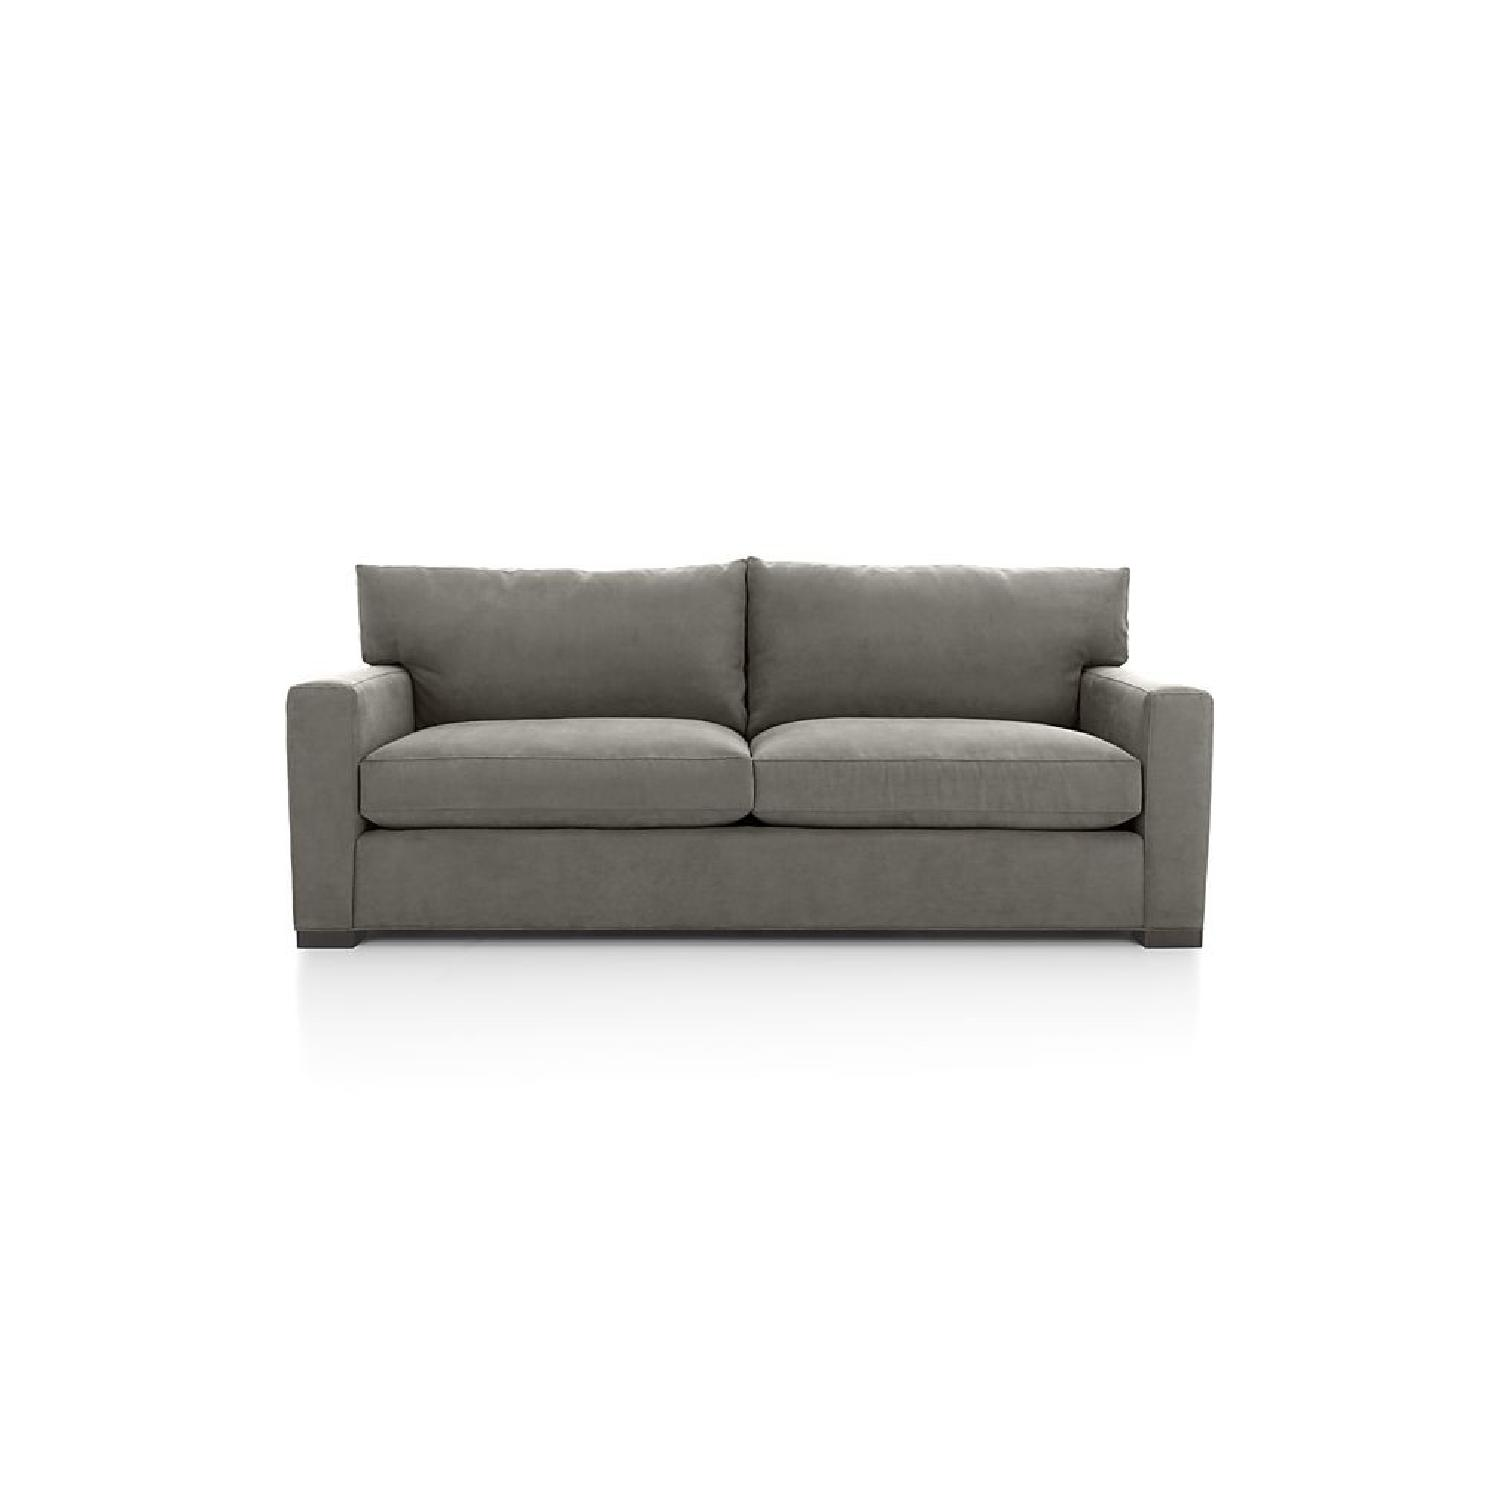 Crate Barrel Axis II Sleeper Sofa AptDeco